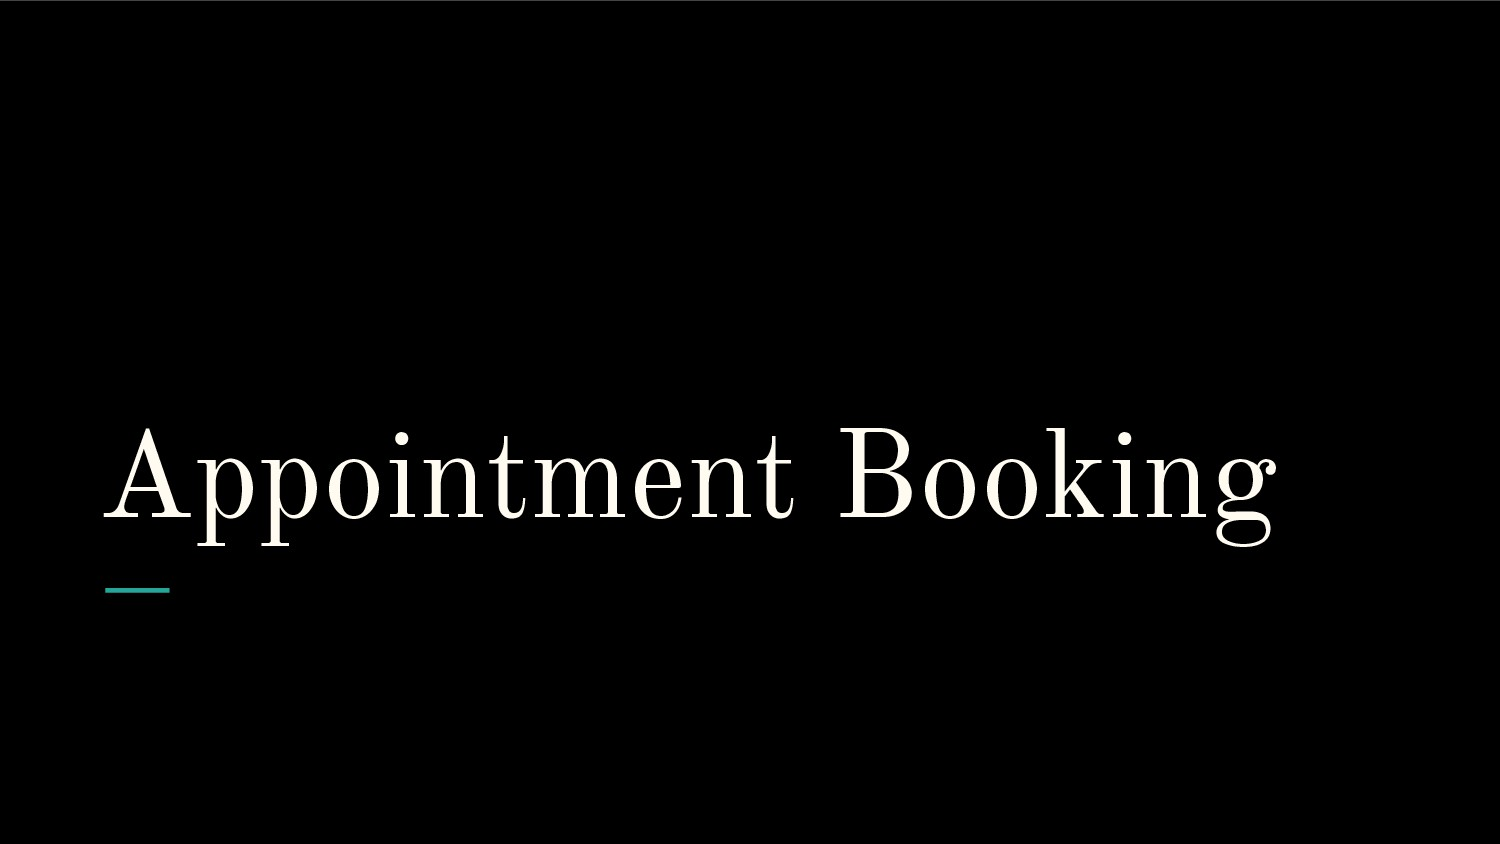 Appointment Booking